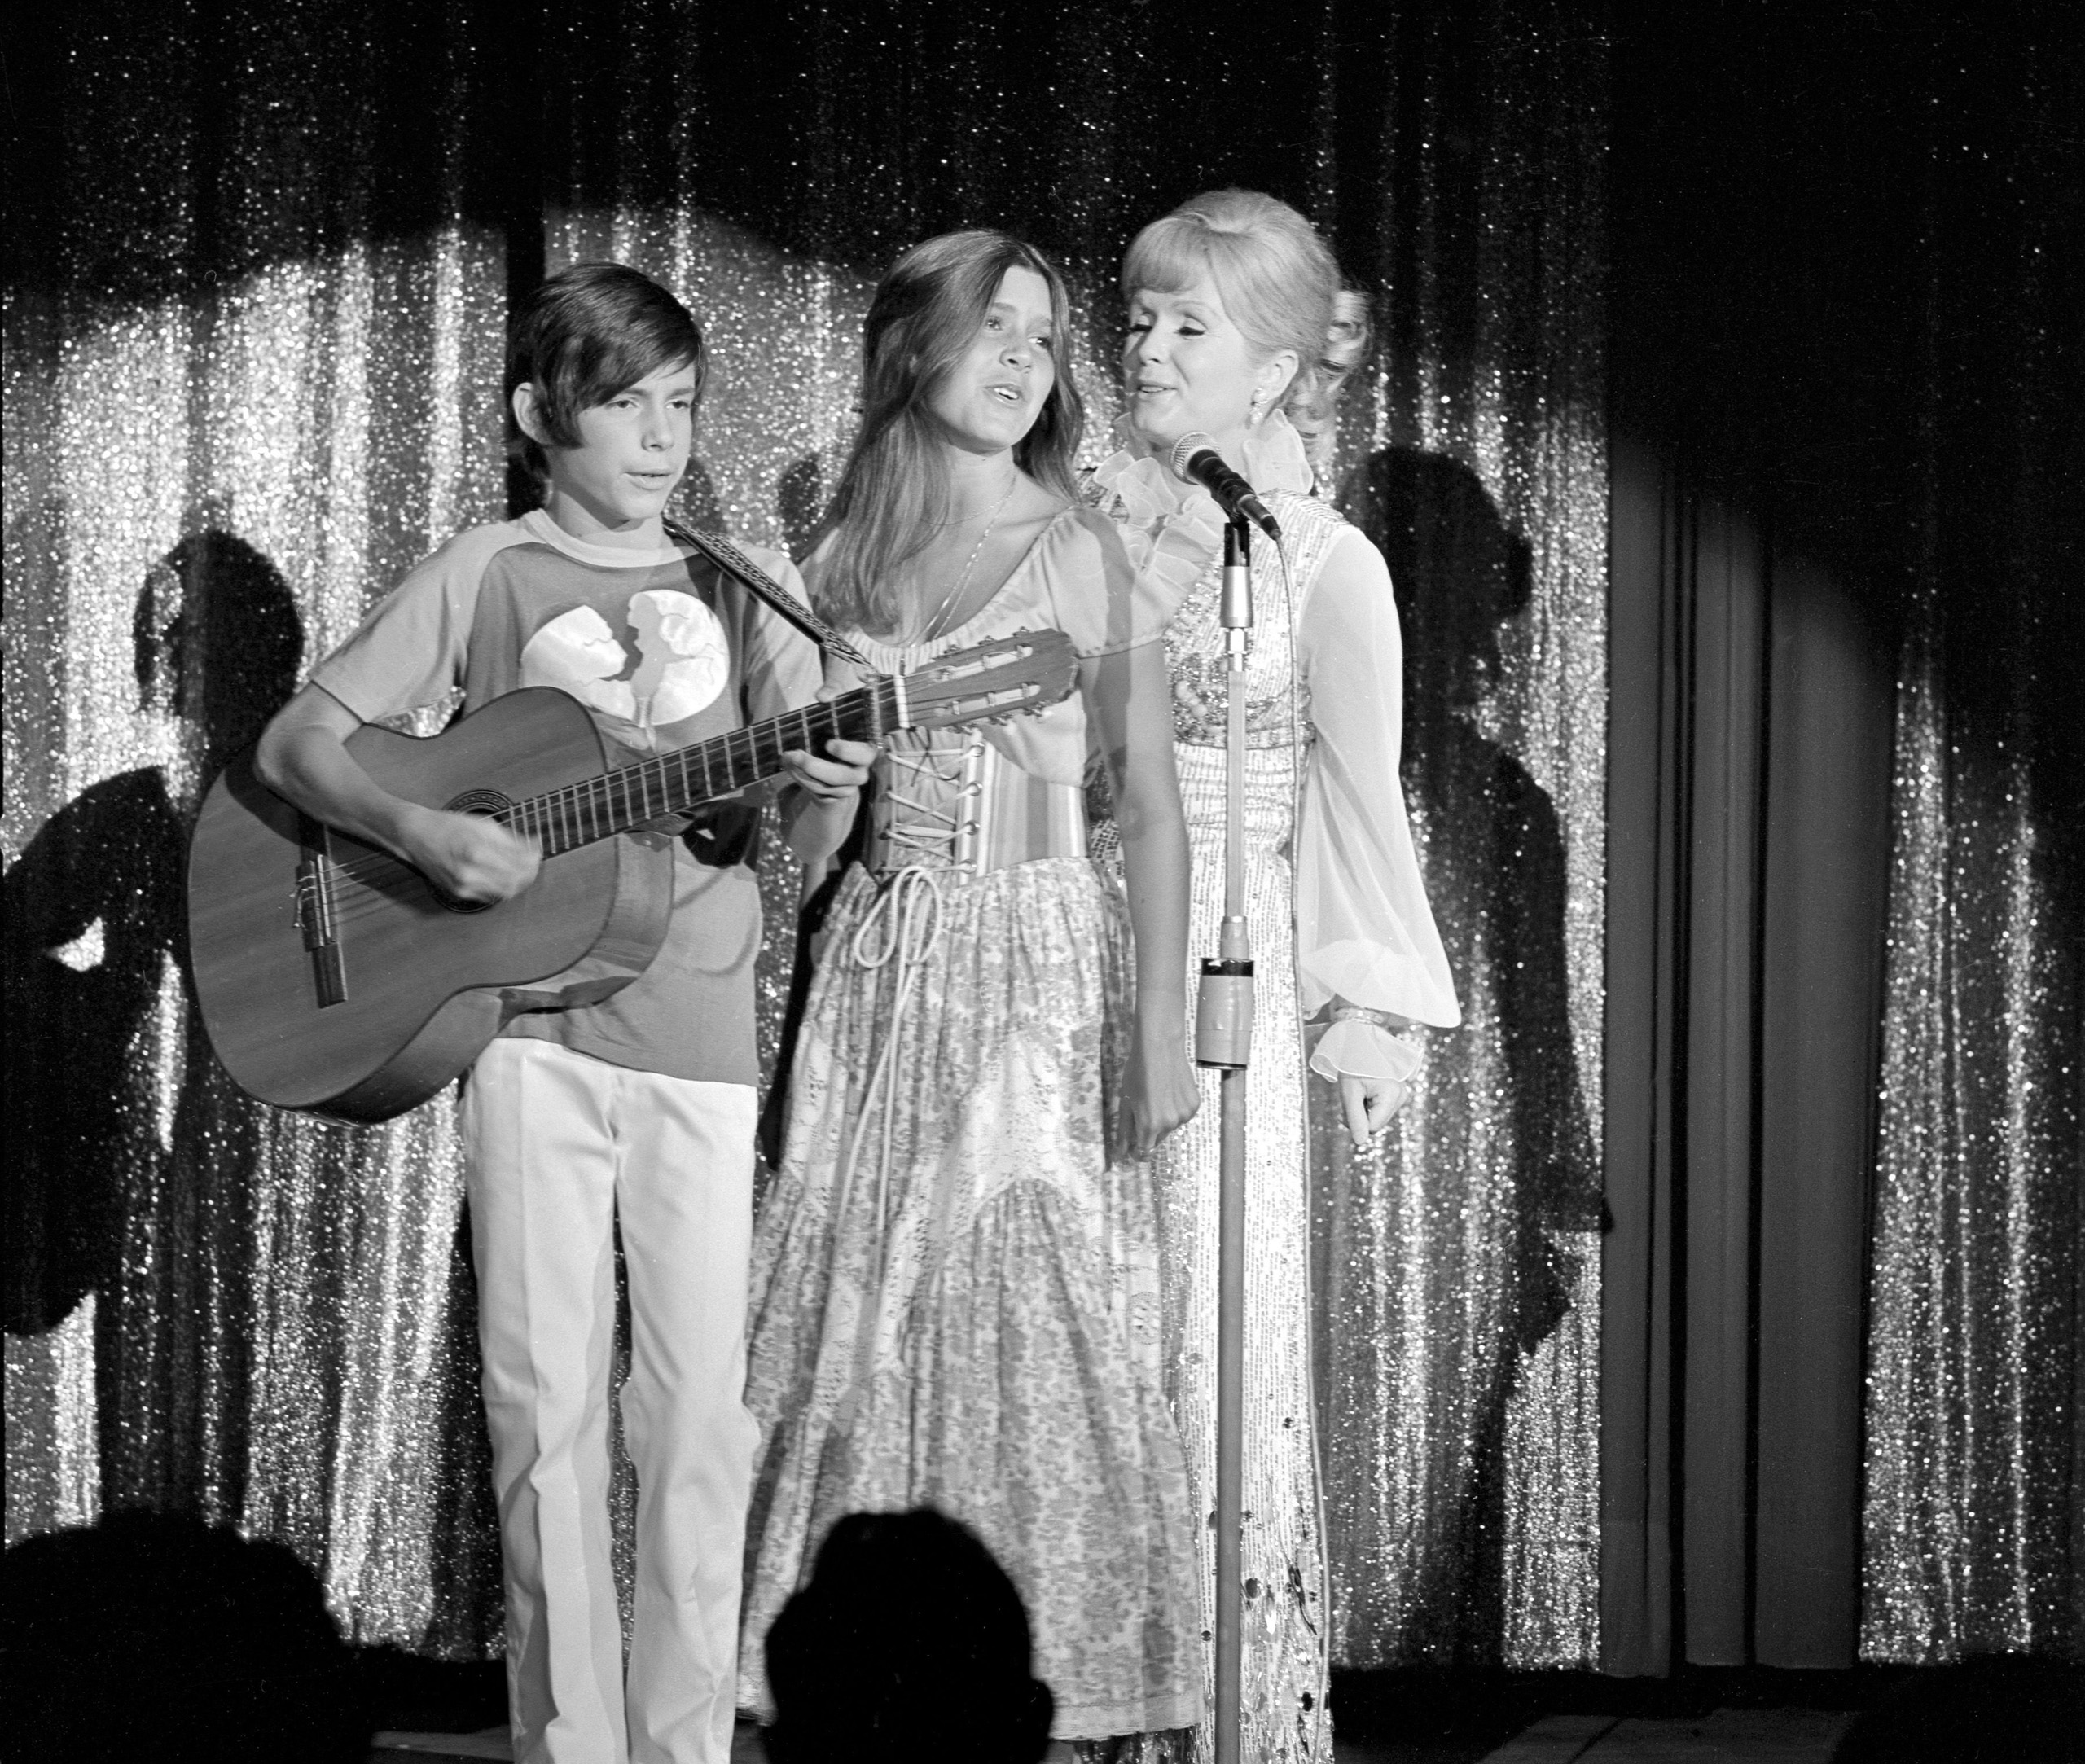 Debbie Reynolds (R) with her daughter Carrie Fisher (C) and son Todd Fisher (L) on opening night of her Reynolds show run at the Desert Inn in Las Vegas, Nevada, USA, 28 July 1971.